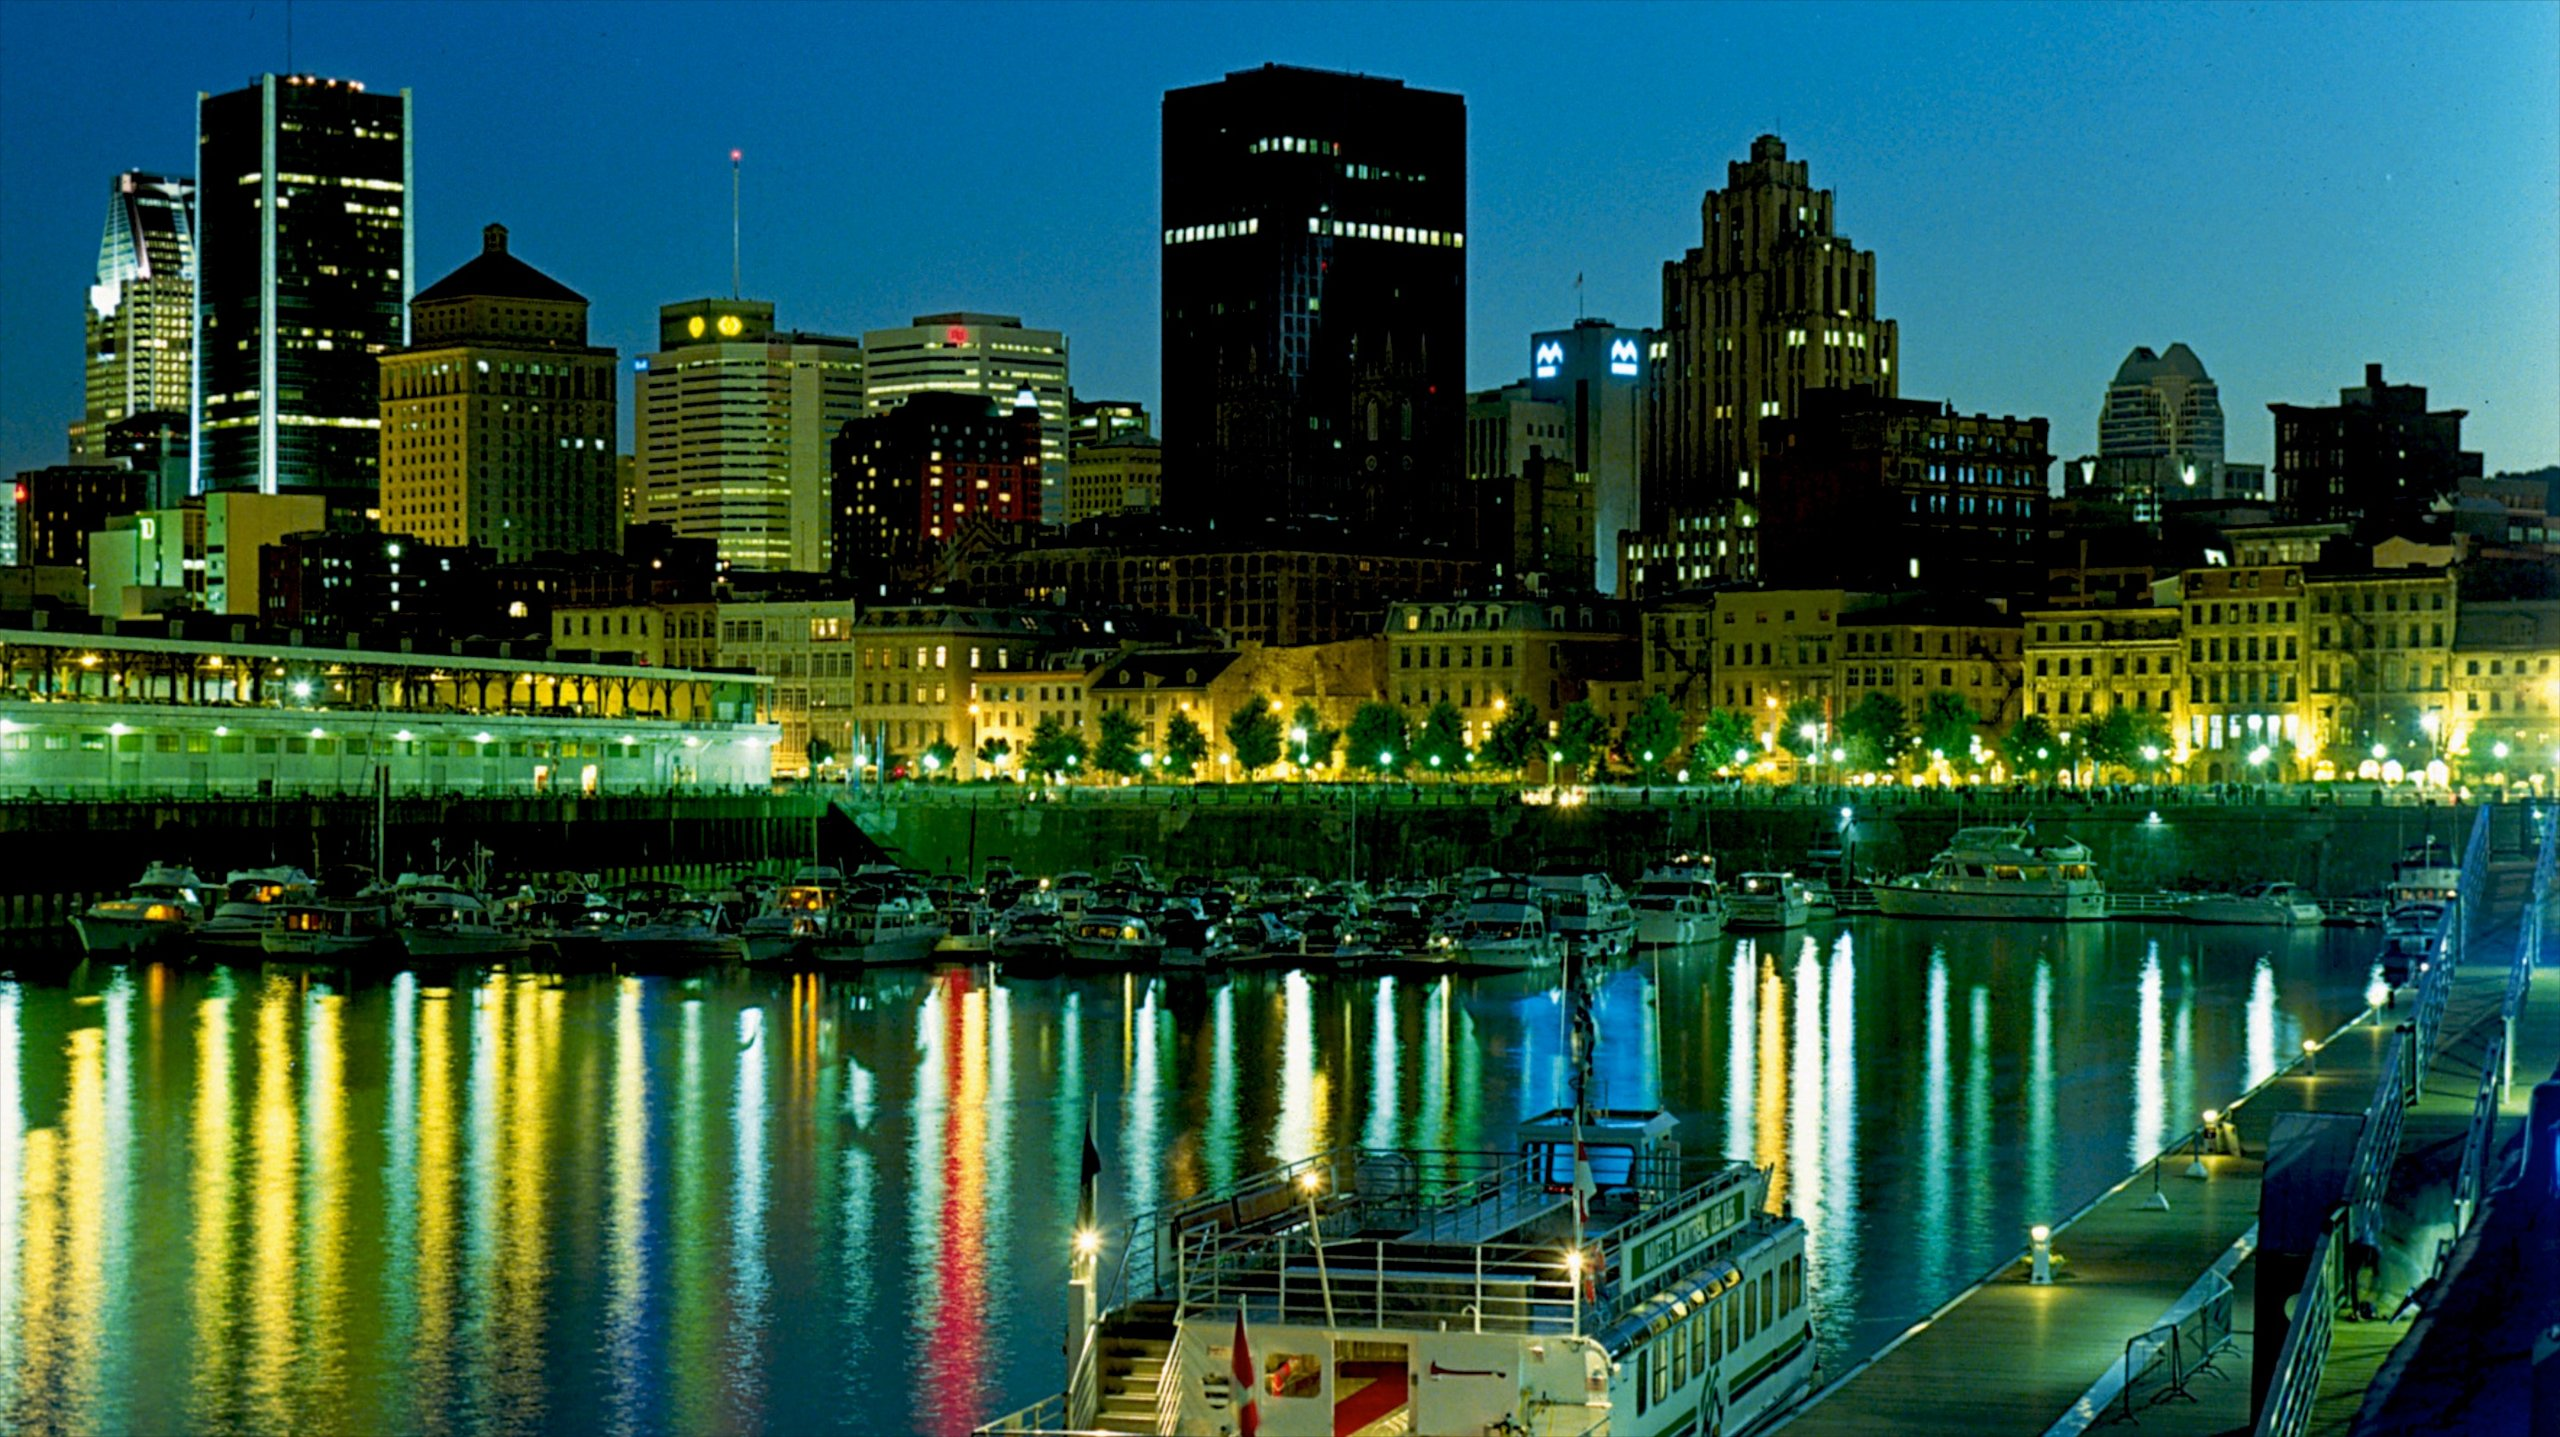 Historic architecture, modern attractions and an exciting calendar of festivals make it impossible to get bored at this lively and scenic riverfront space.